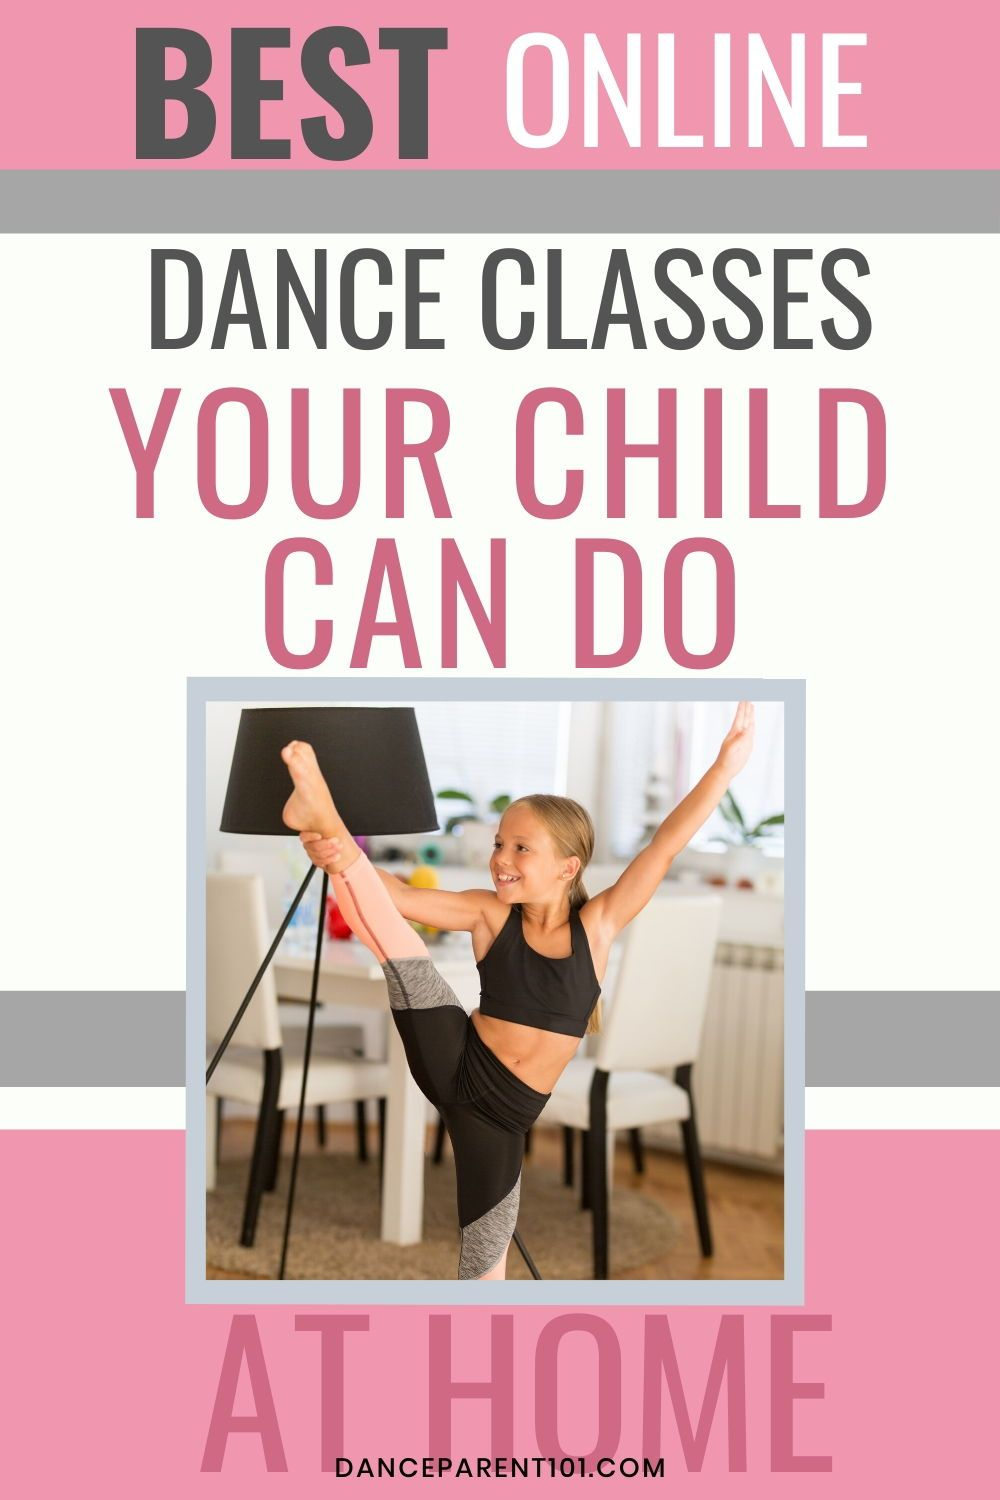 Pin on Online/DVD Dance Lessons